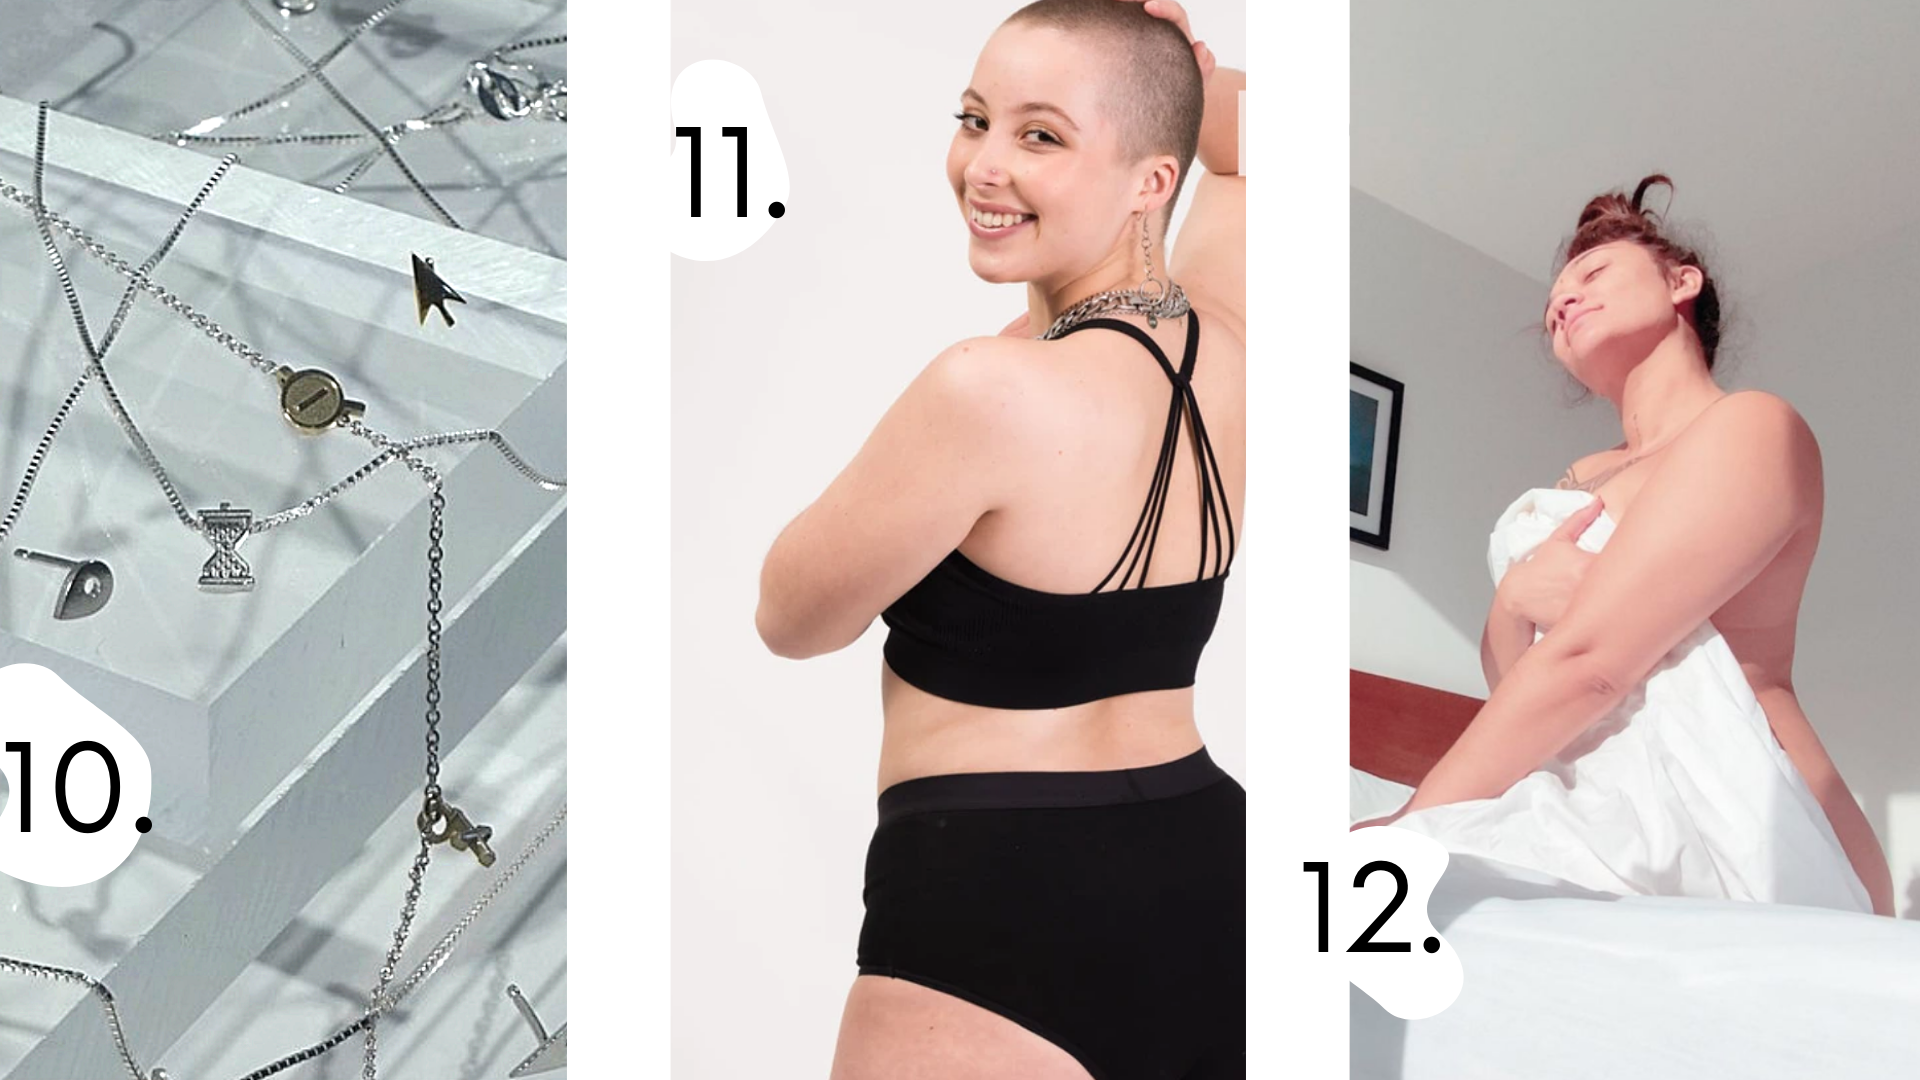 10. Different bracelets and necklaces with pendants that look like cursors and map signs and other computer icons, 11. beautiful bald model smiling with her back to the camera in black underwear and top, 12. Cush sitting on her bed naked covered by a white sheet with eyes closed and sun on her skin